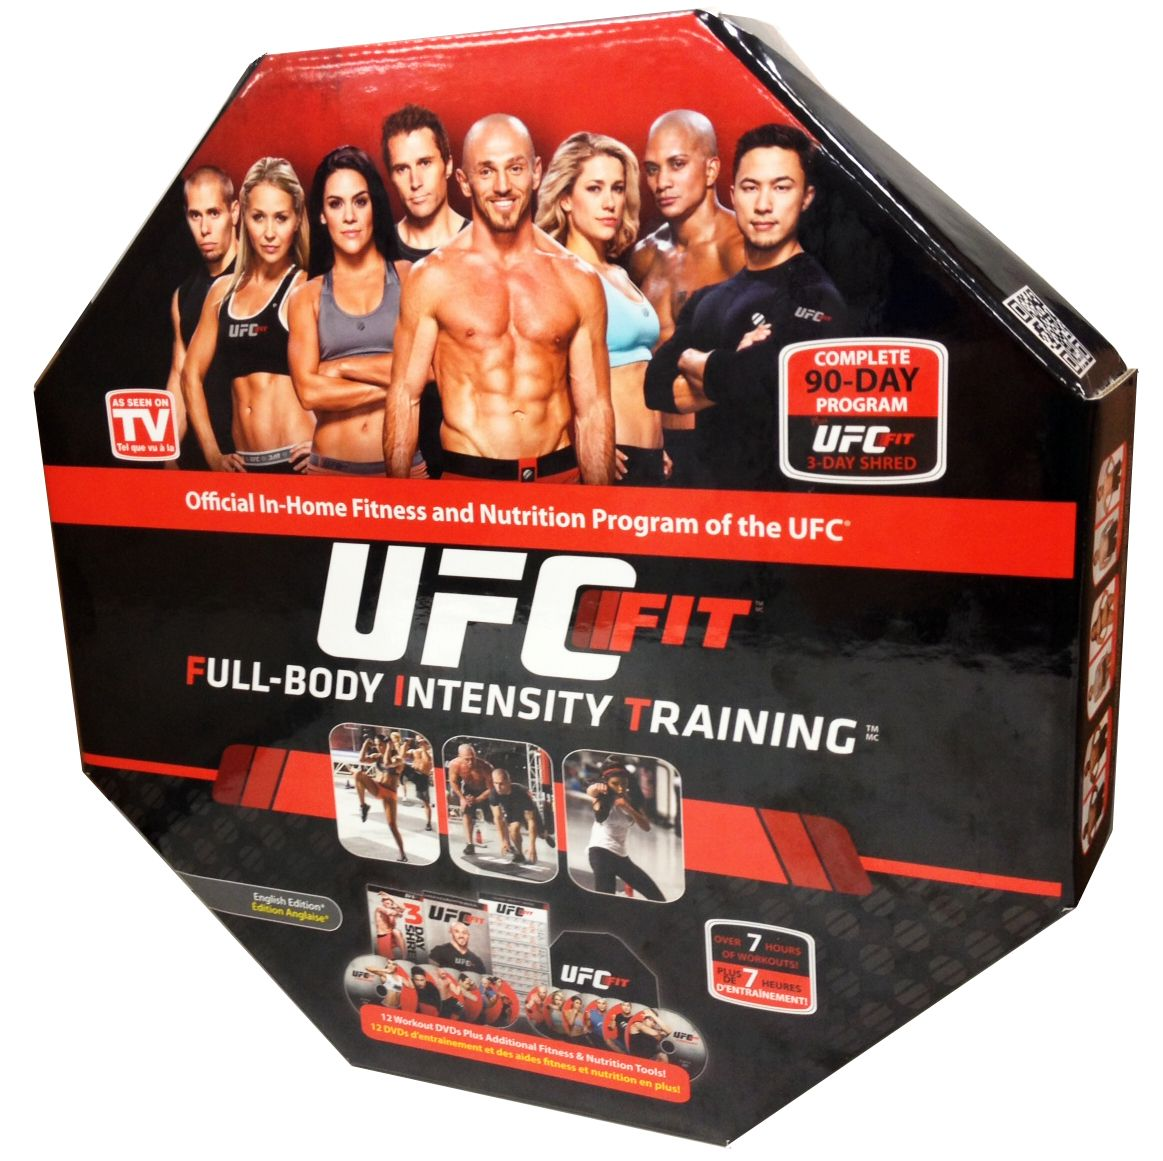 UFC Fit. Great powerhouse workout for guys or girls. Also